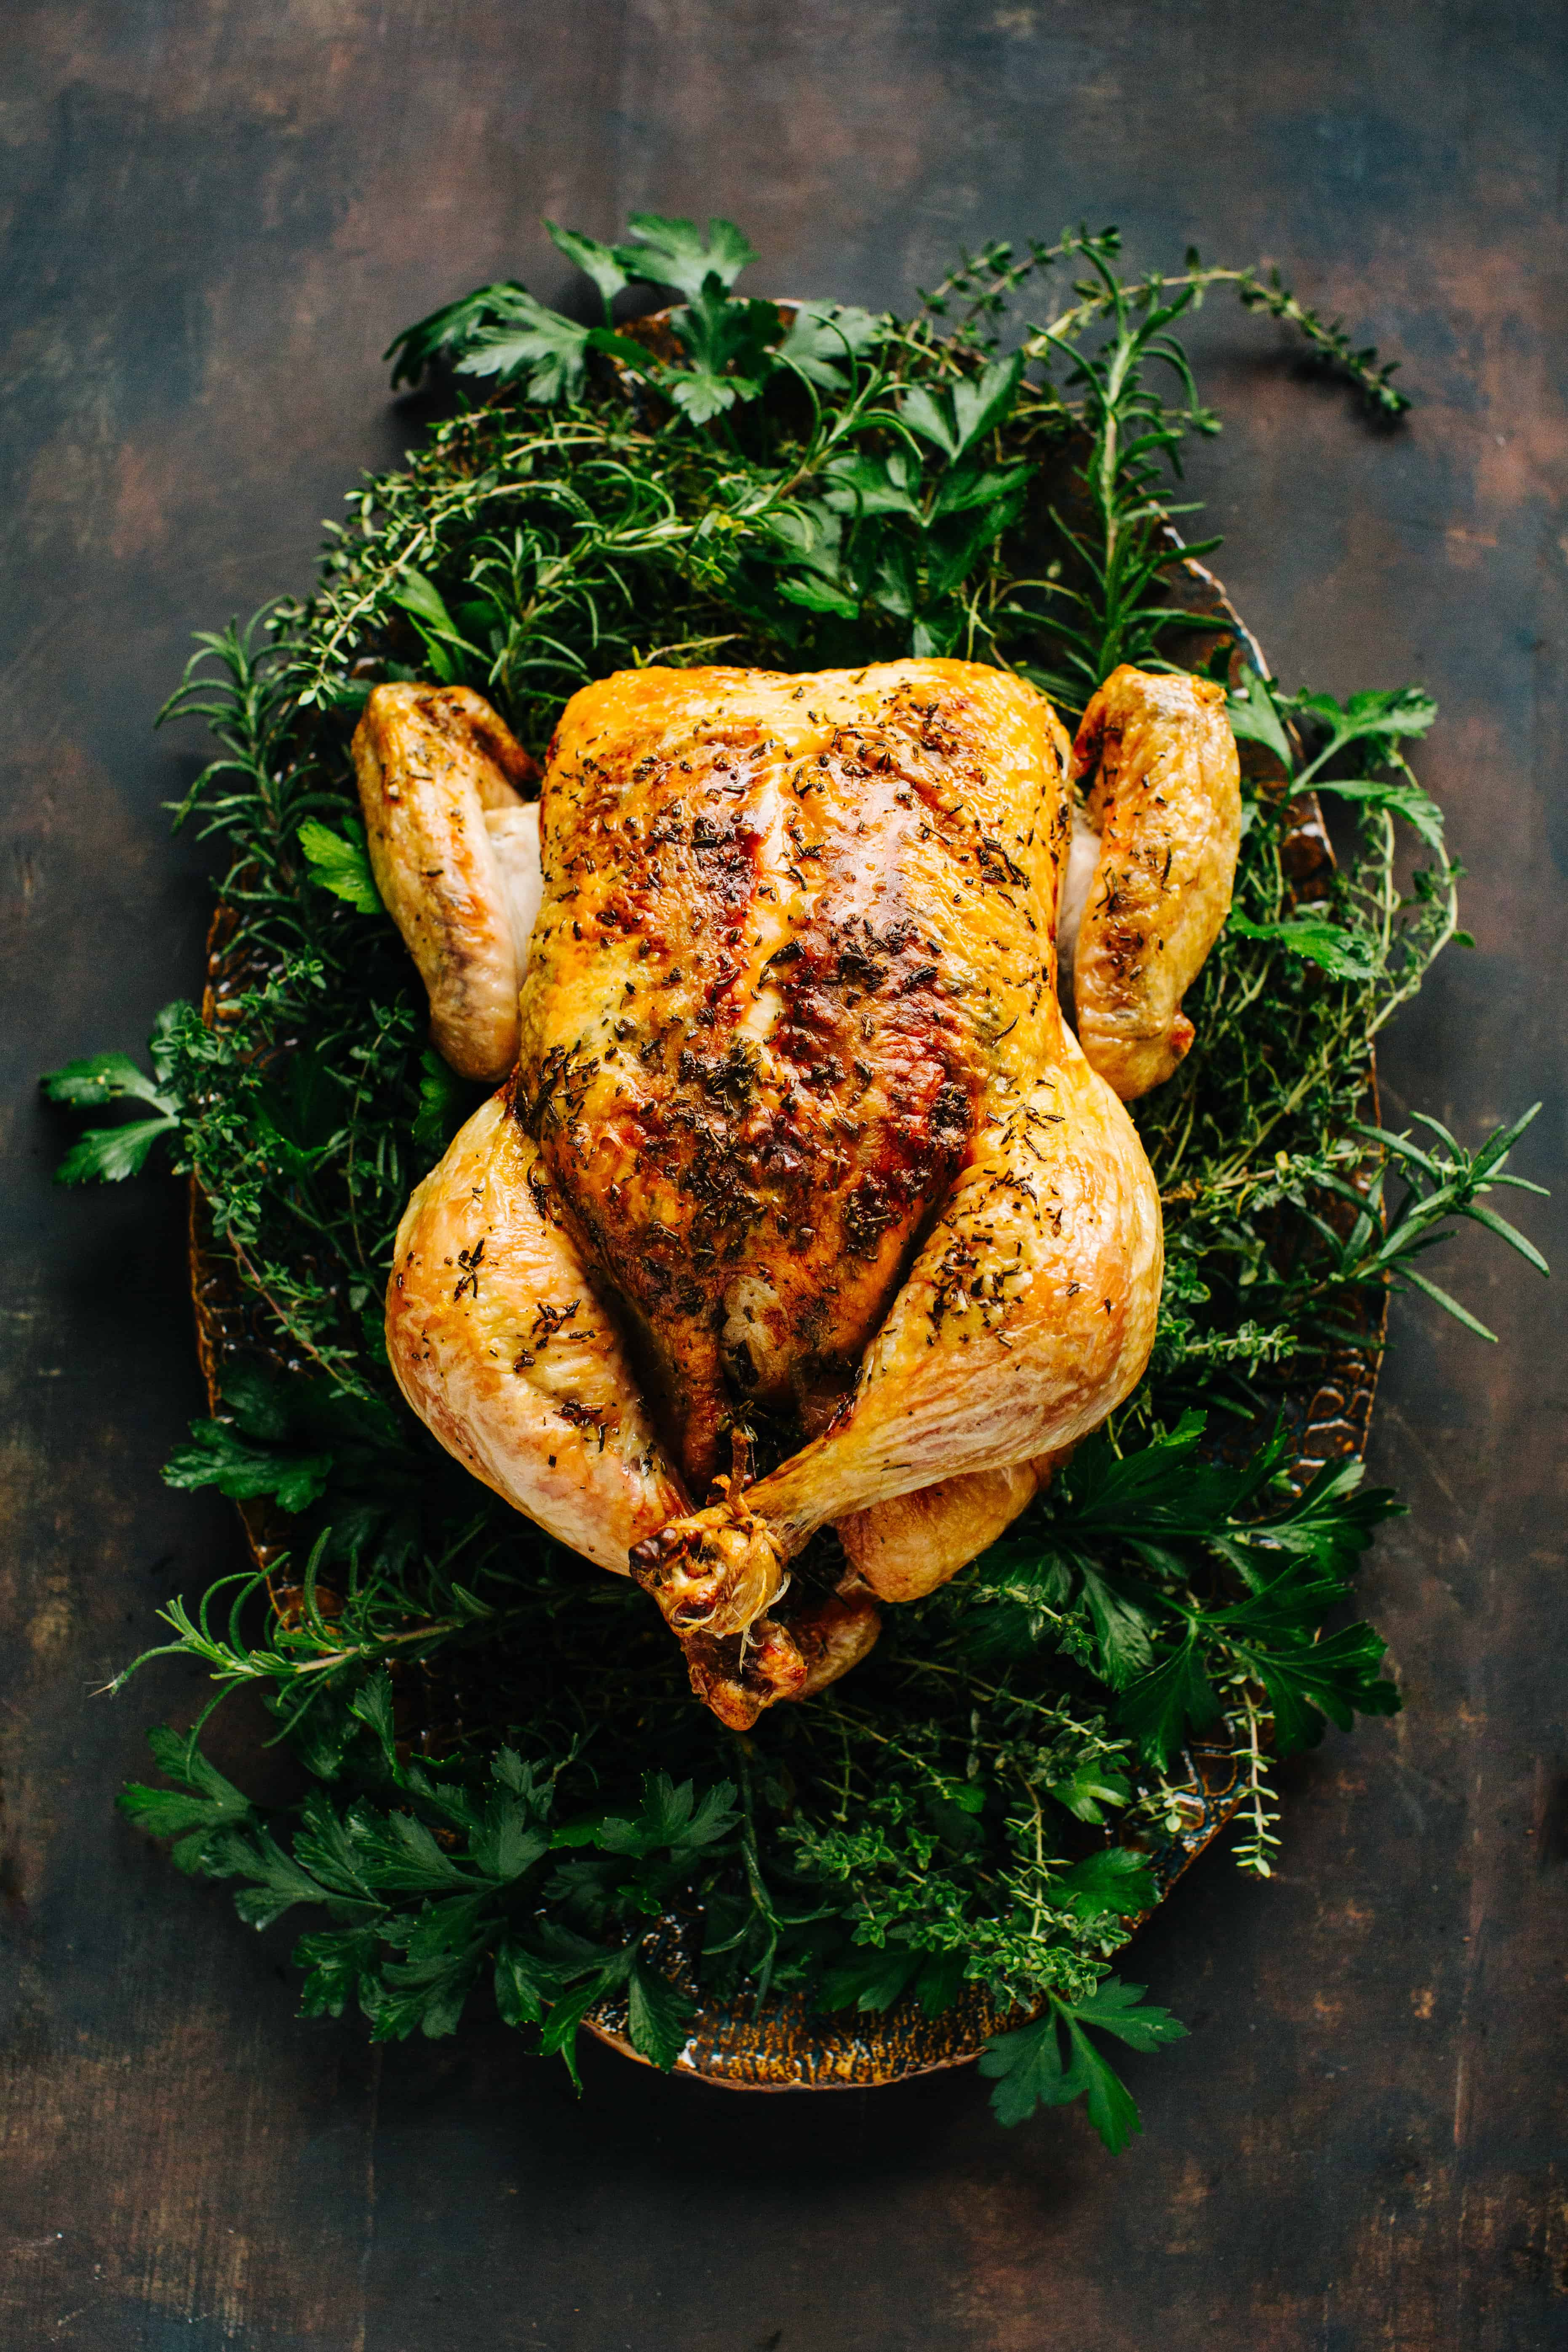 whole roasted chicken on a serving platter surrounded by fresh herbs on dark wood background